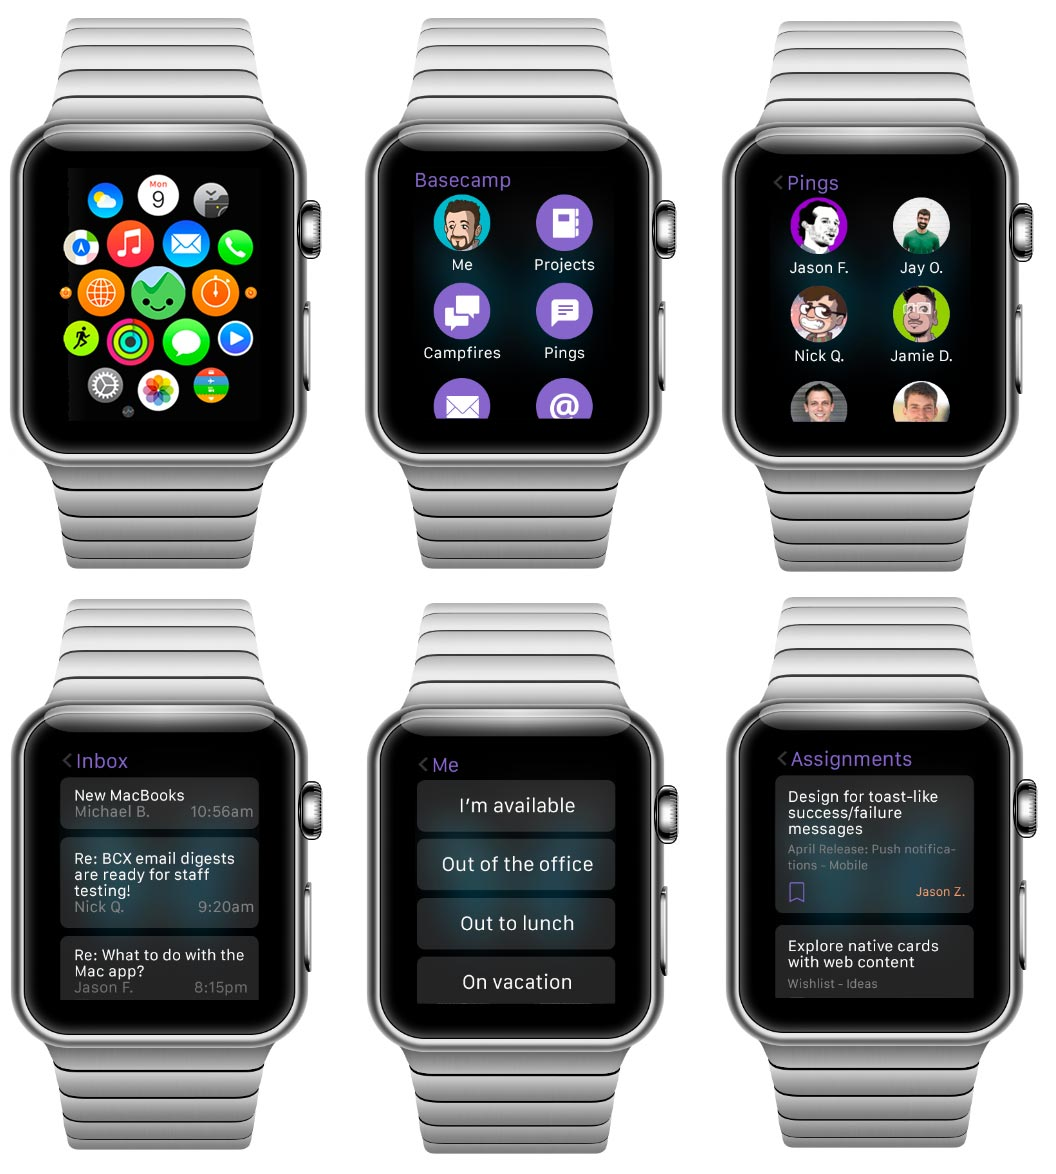 Apple Watch screens